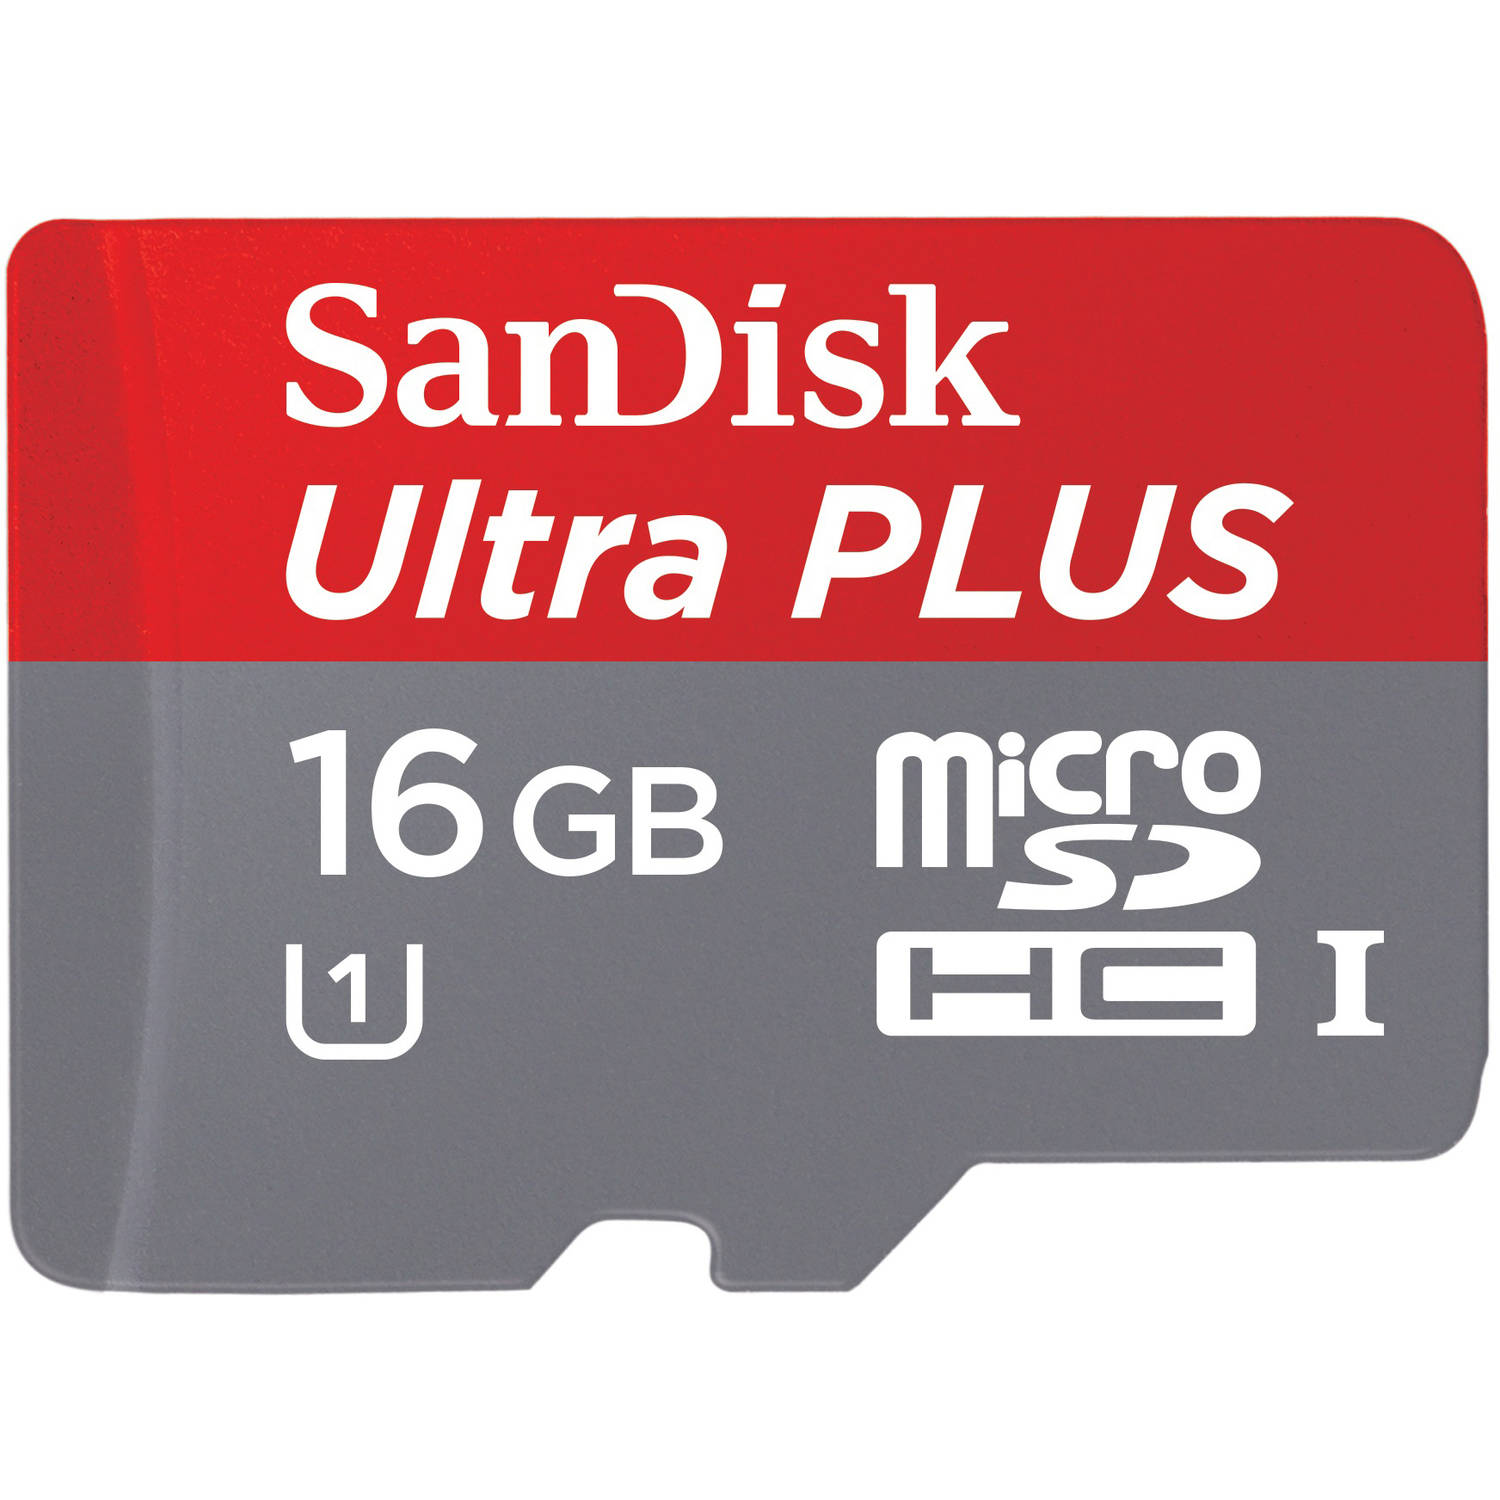 SanDisk Ultra PLUS 16GB microSD Card, Imaging, Class 10